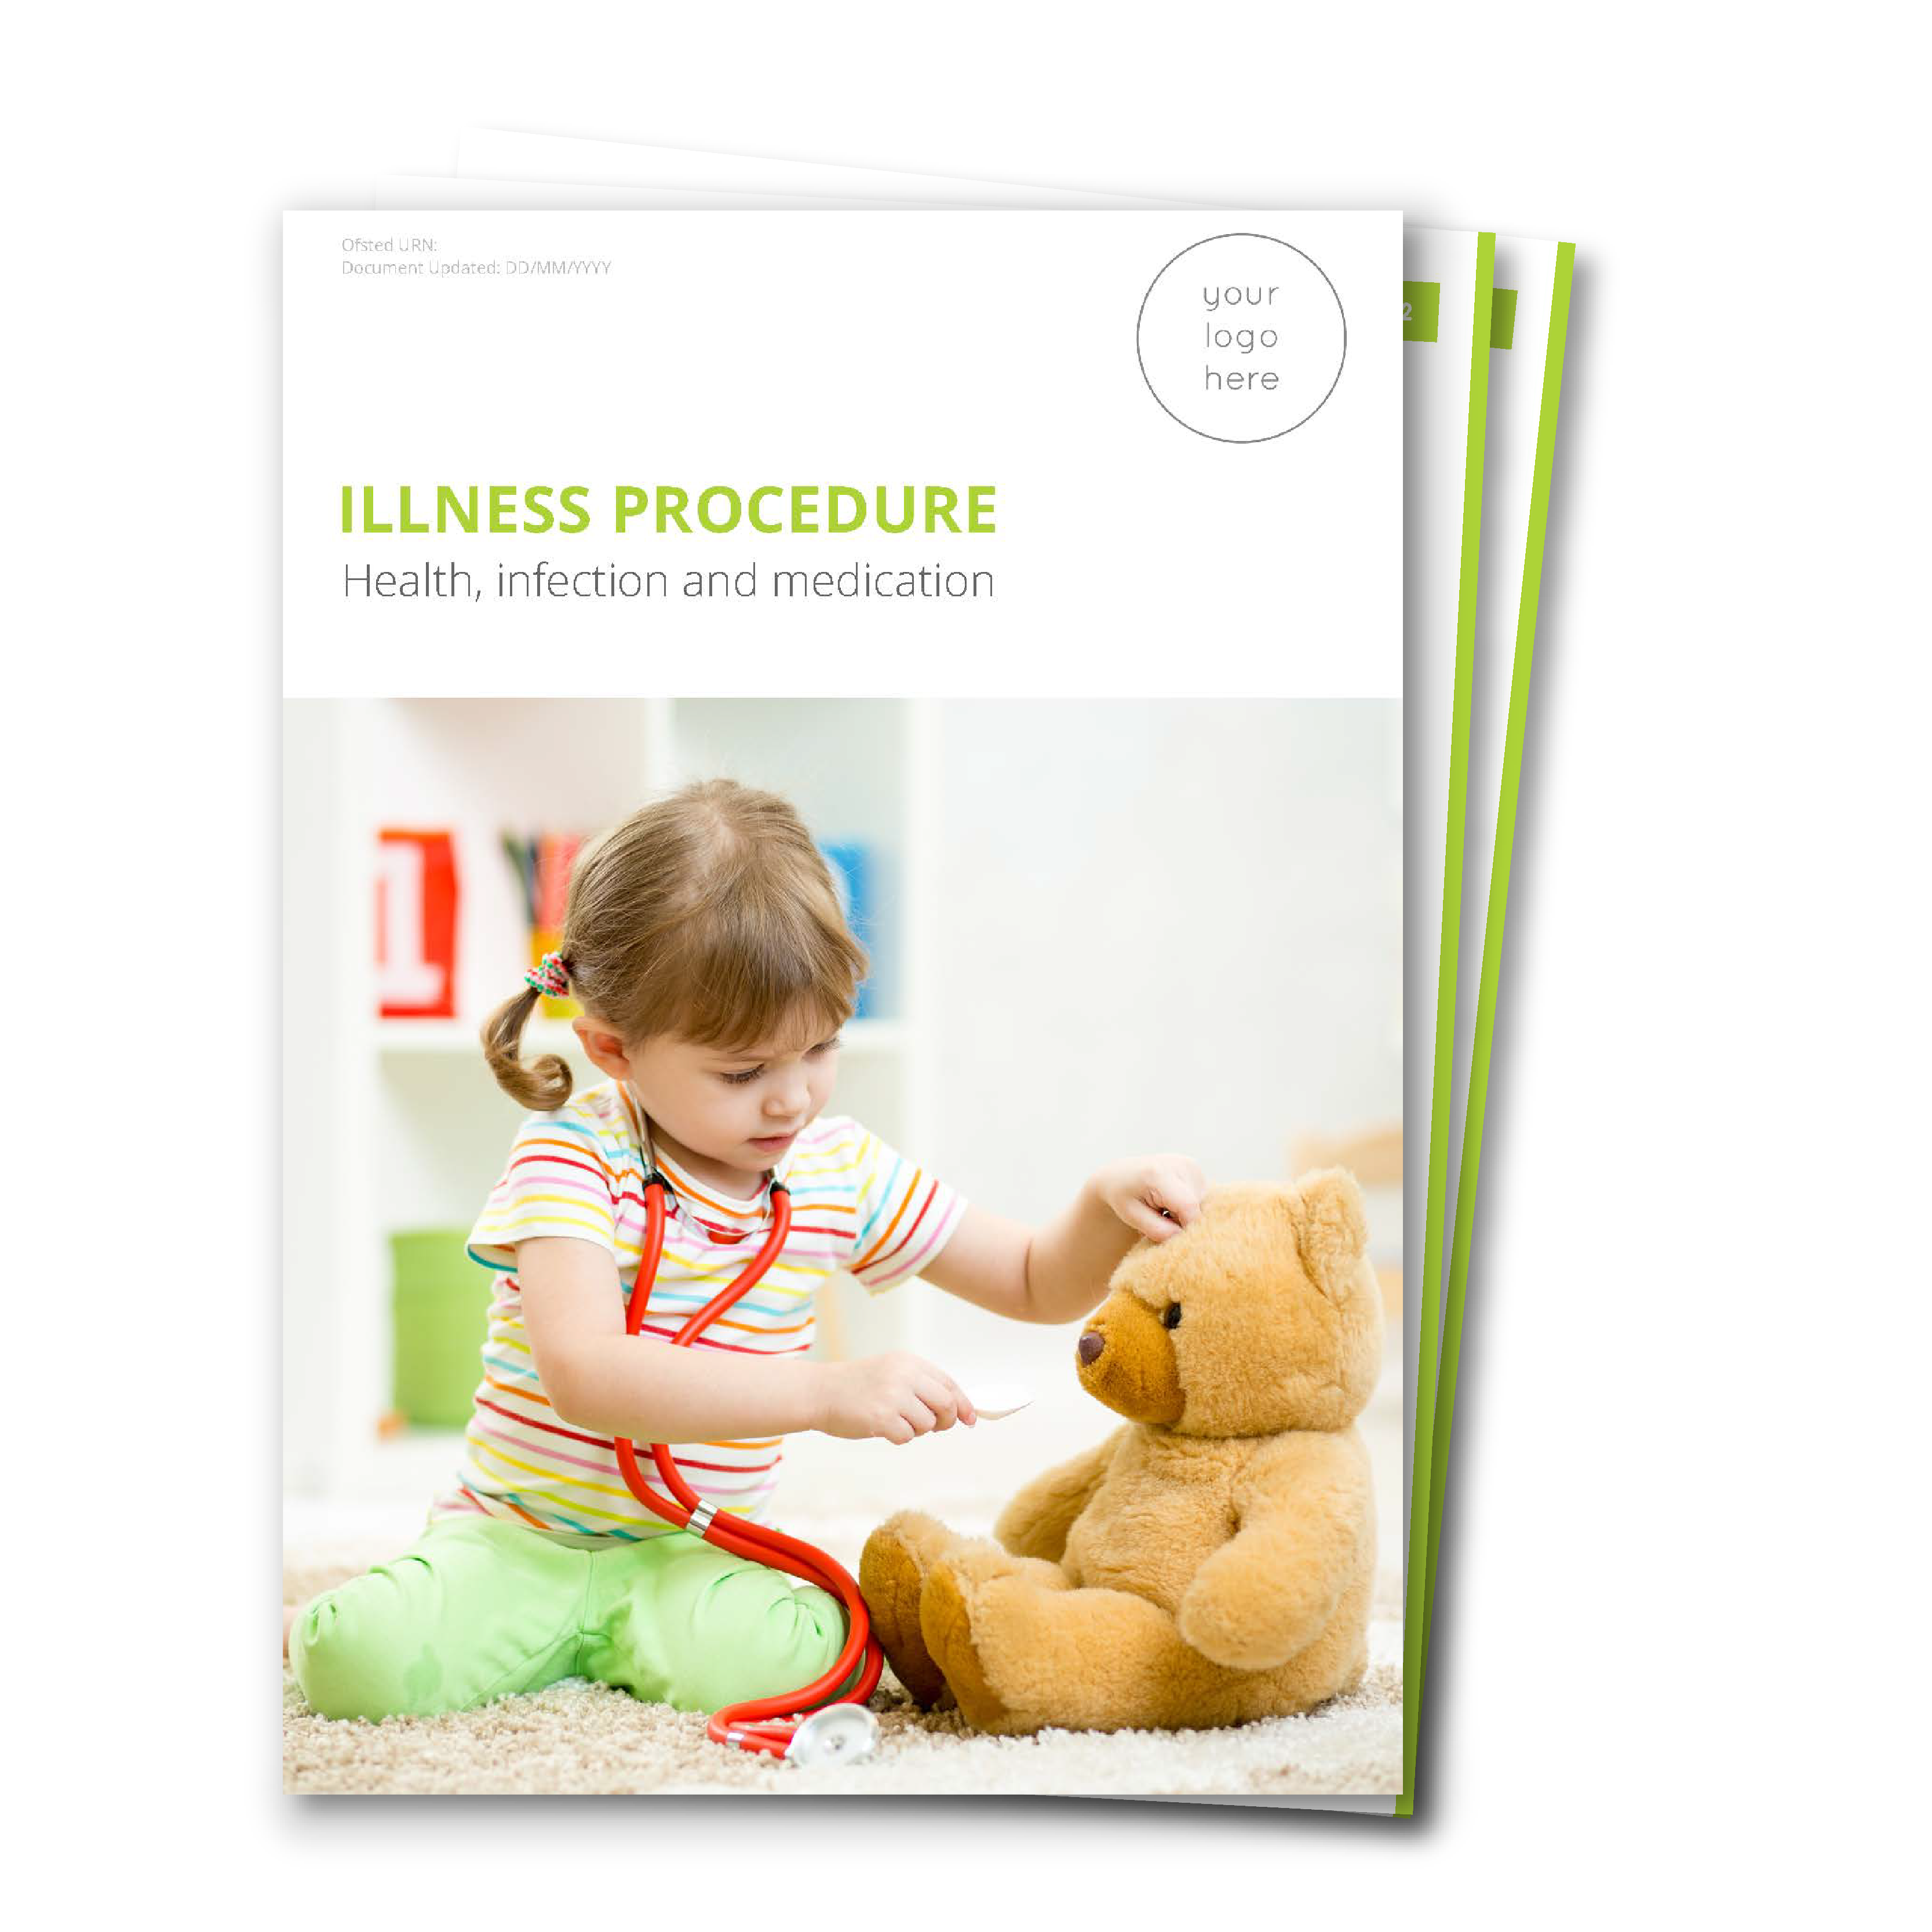 Illness Procedure